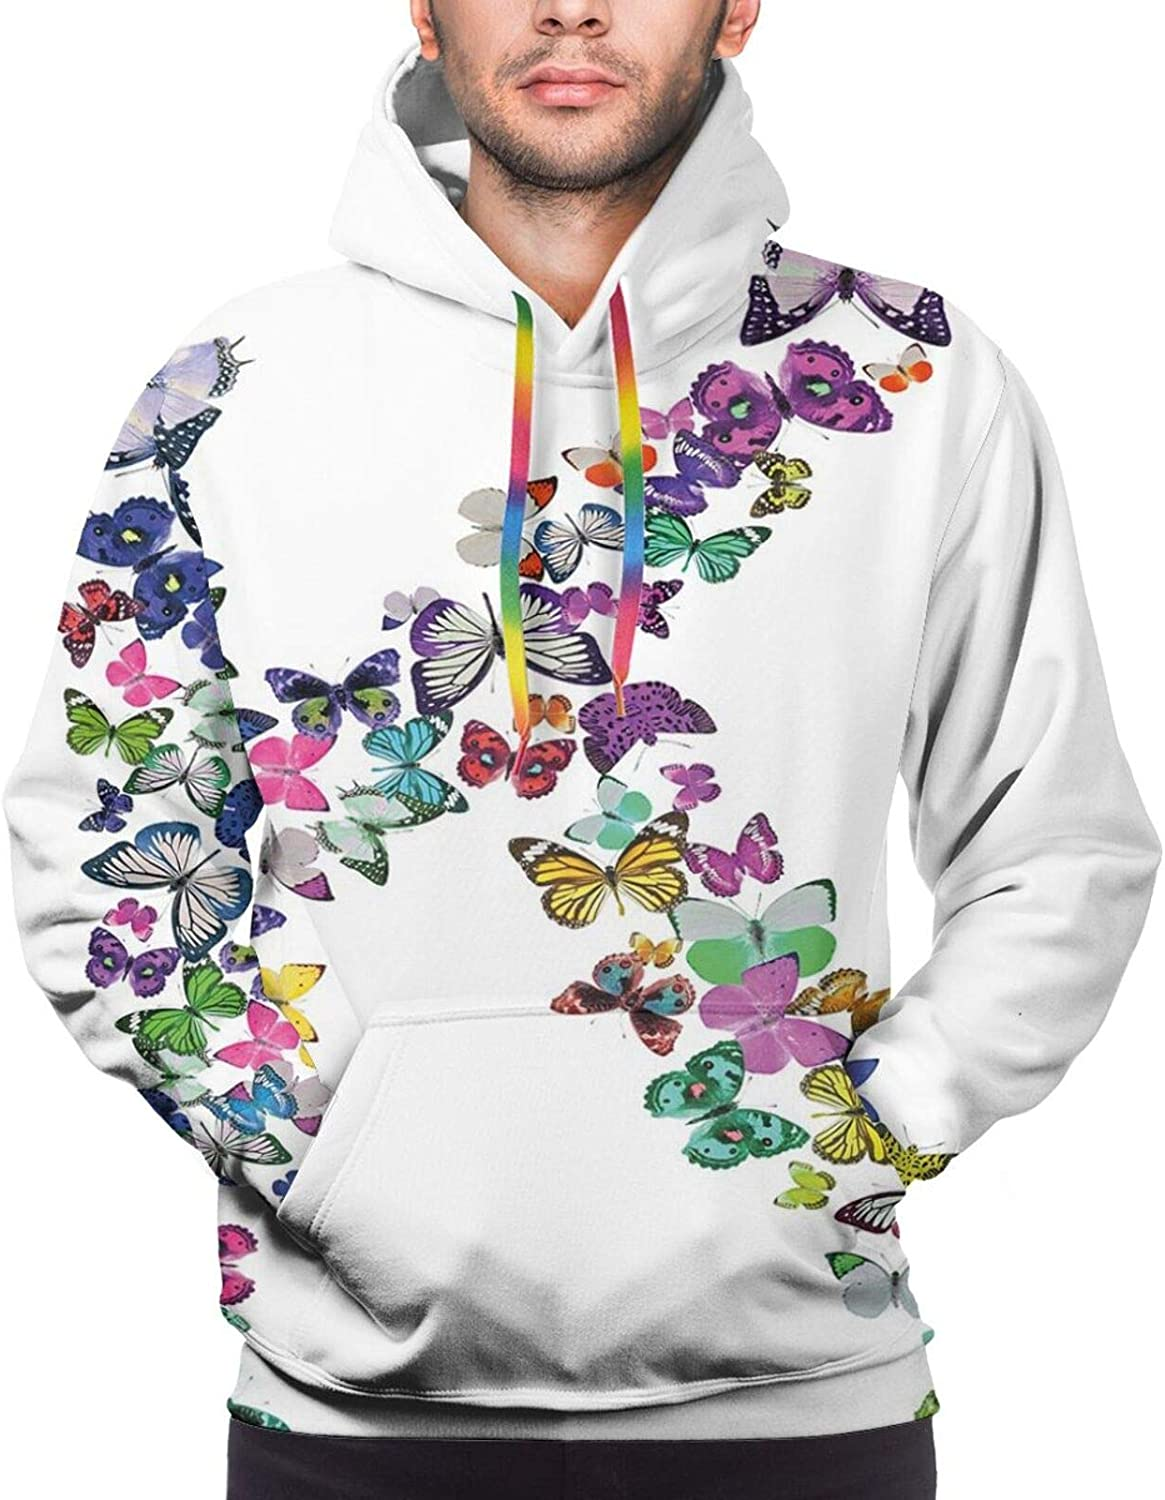 Men's Hoodies Sweatshirts,Nature Inspired Scroll Pattern Buds On an Abstract Background with Colorful Circles